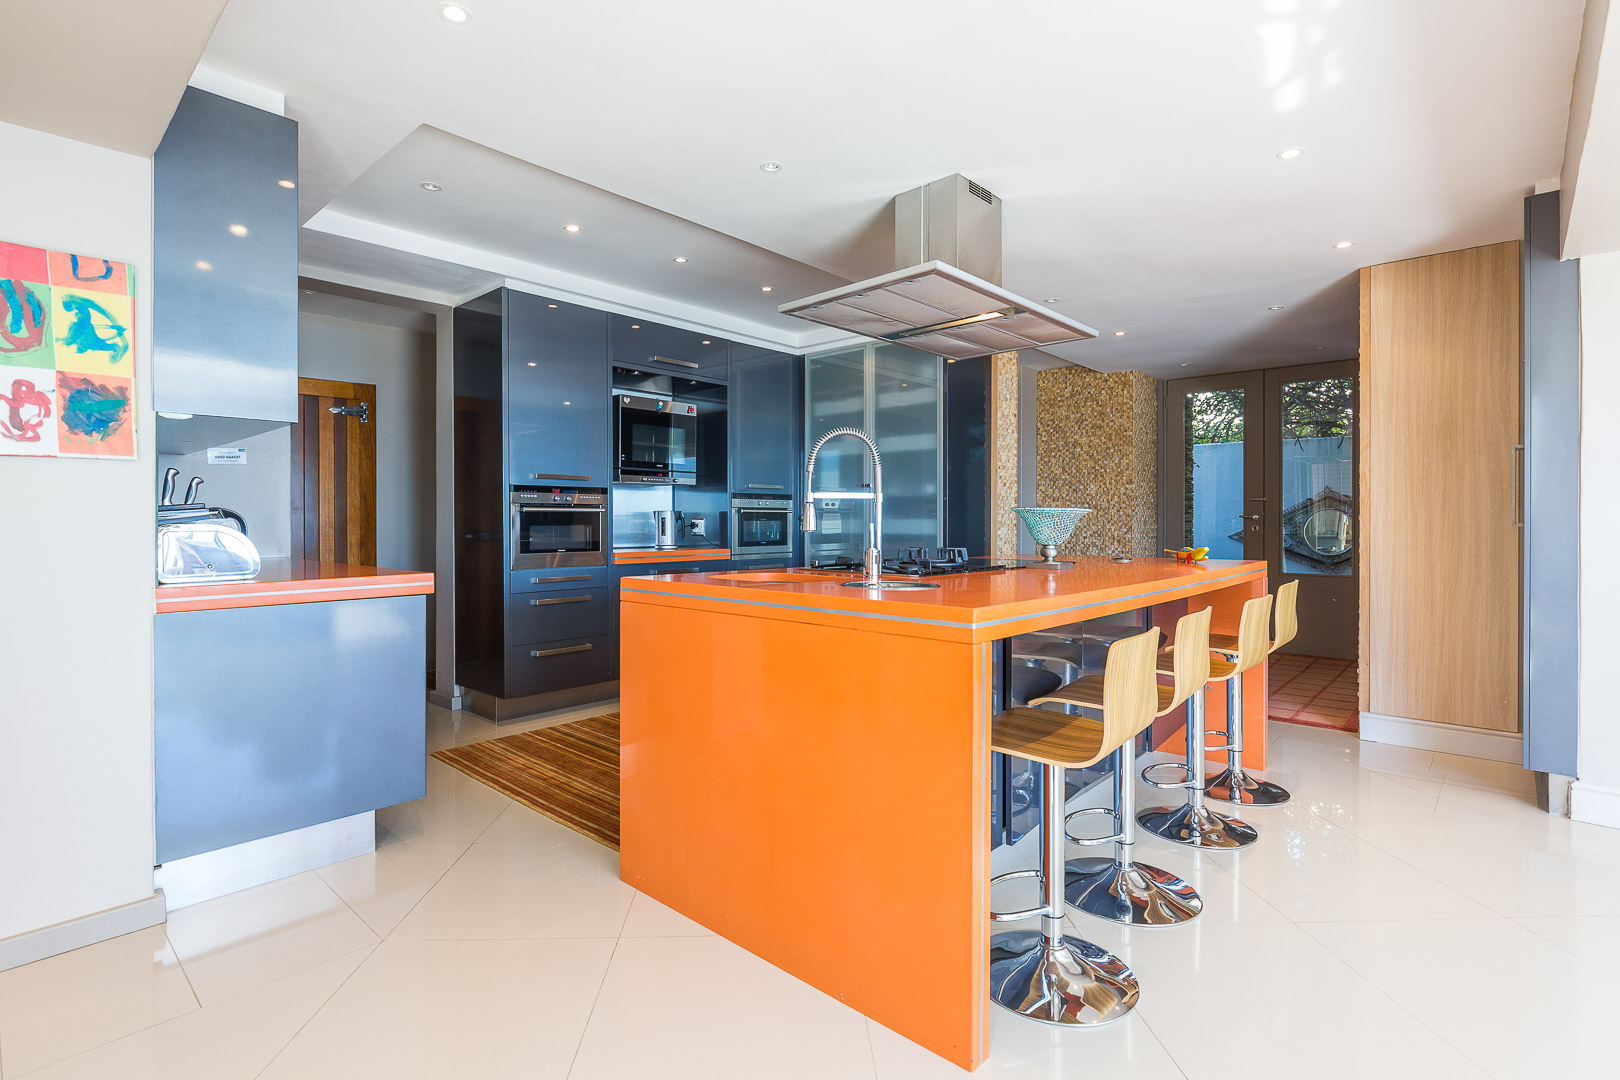 Kitchen Countertops For Sale In Cape Town Cool Kitchen